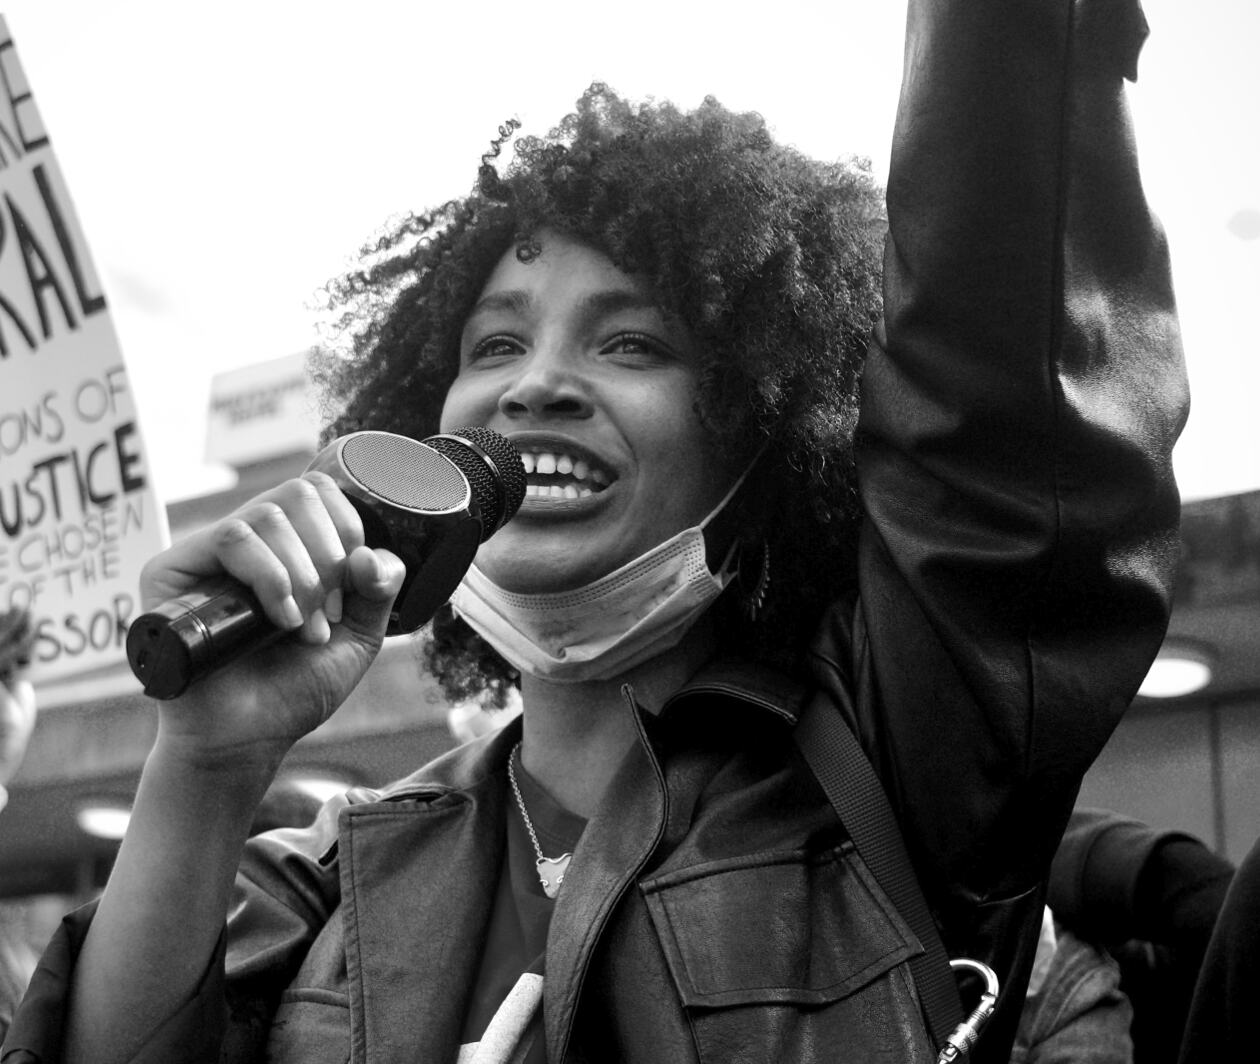 Black Performance as Social Protest